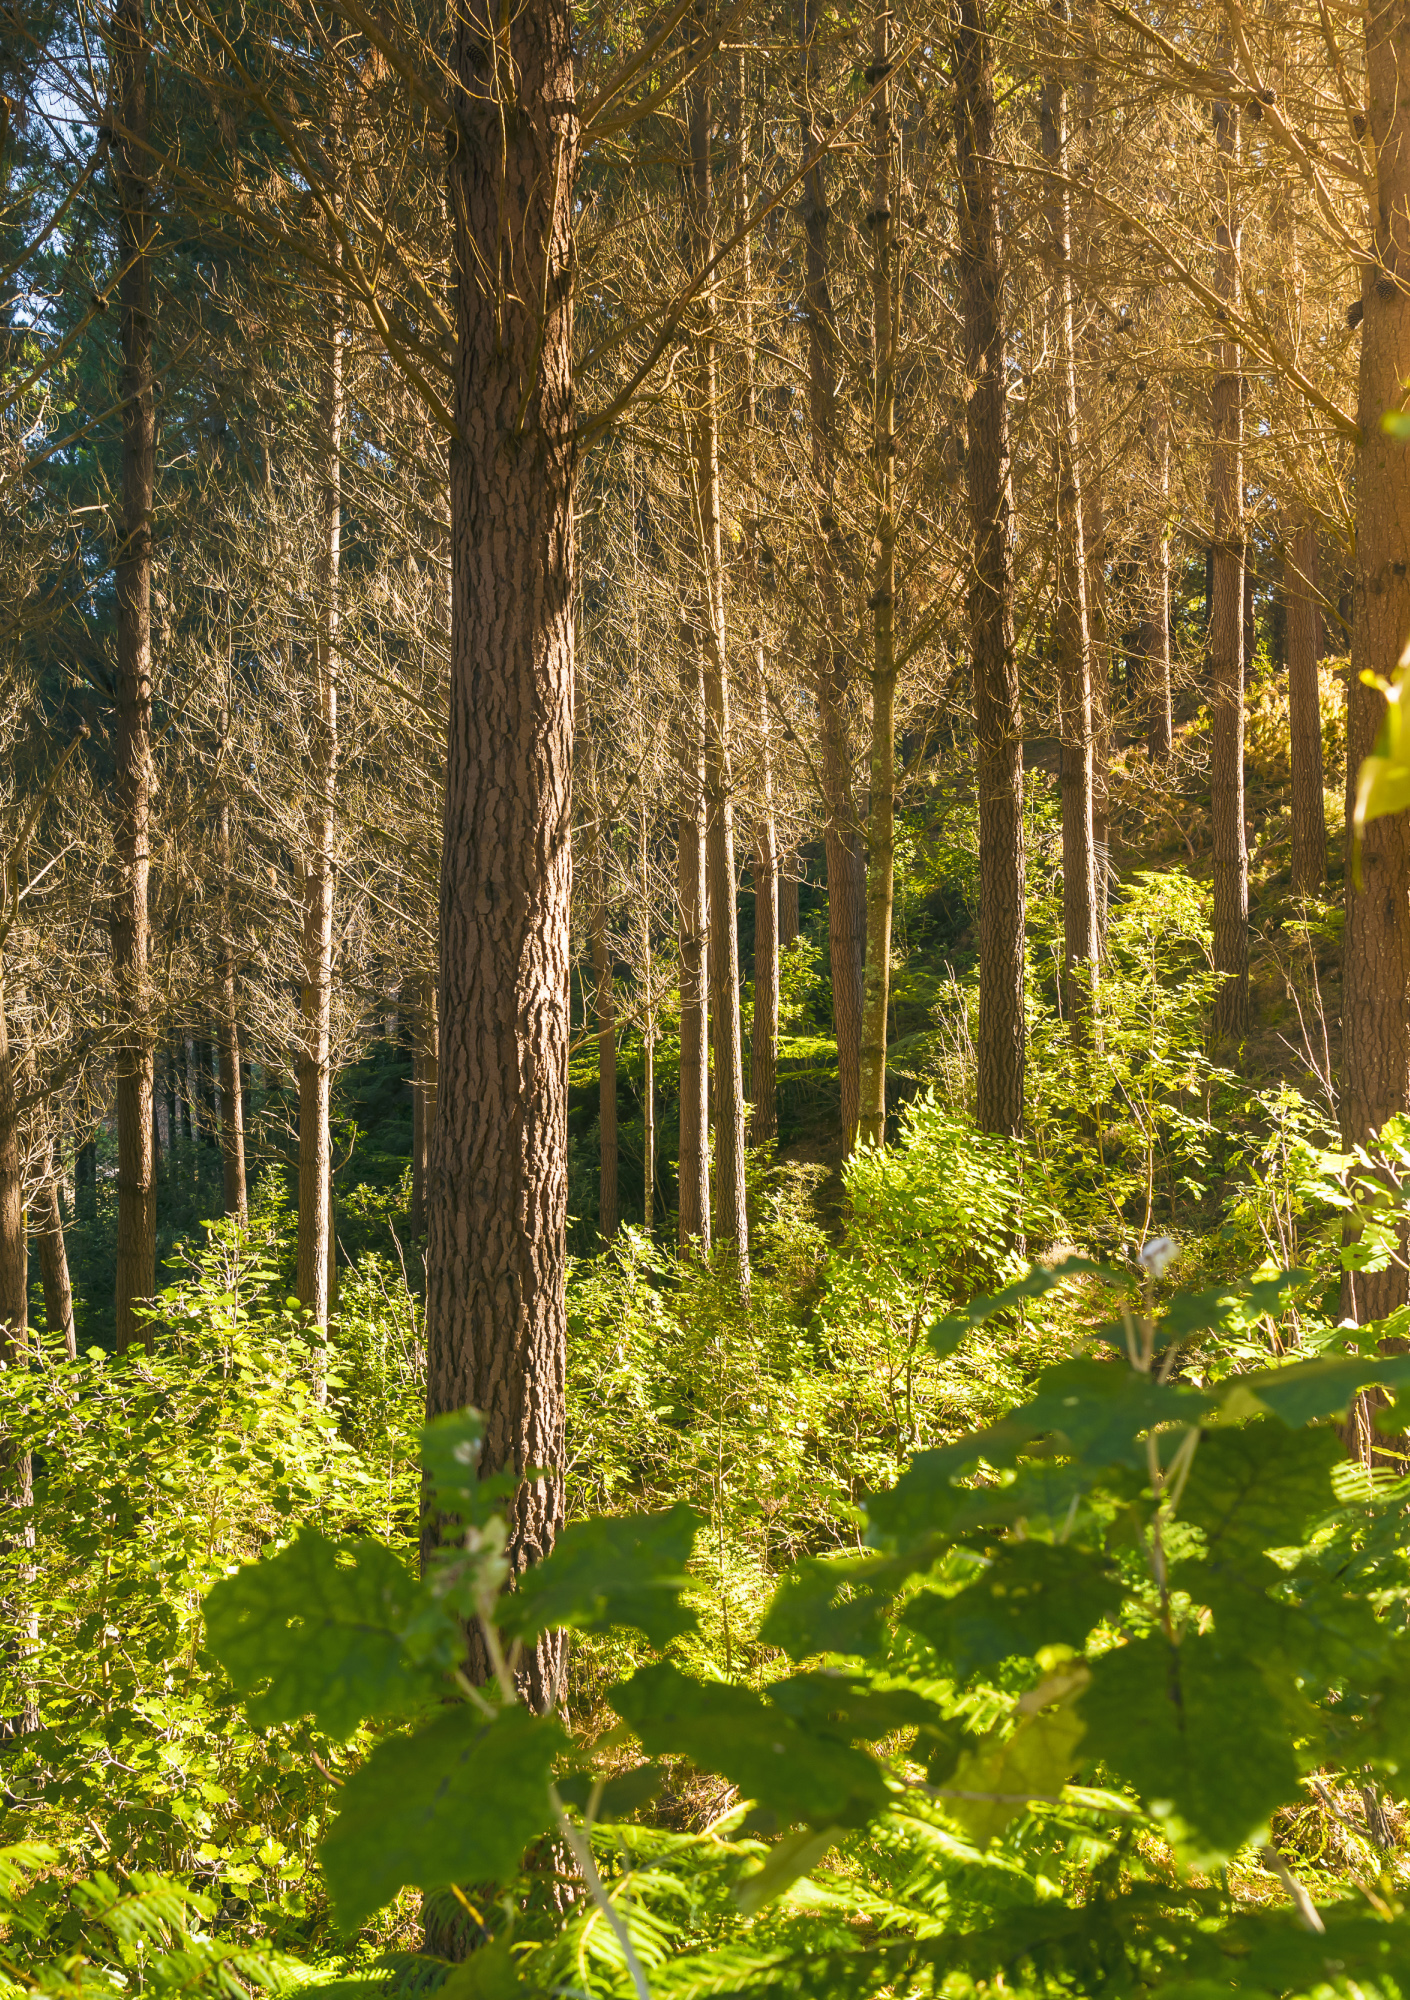 Investing in forestry